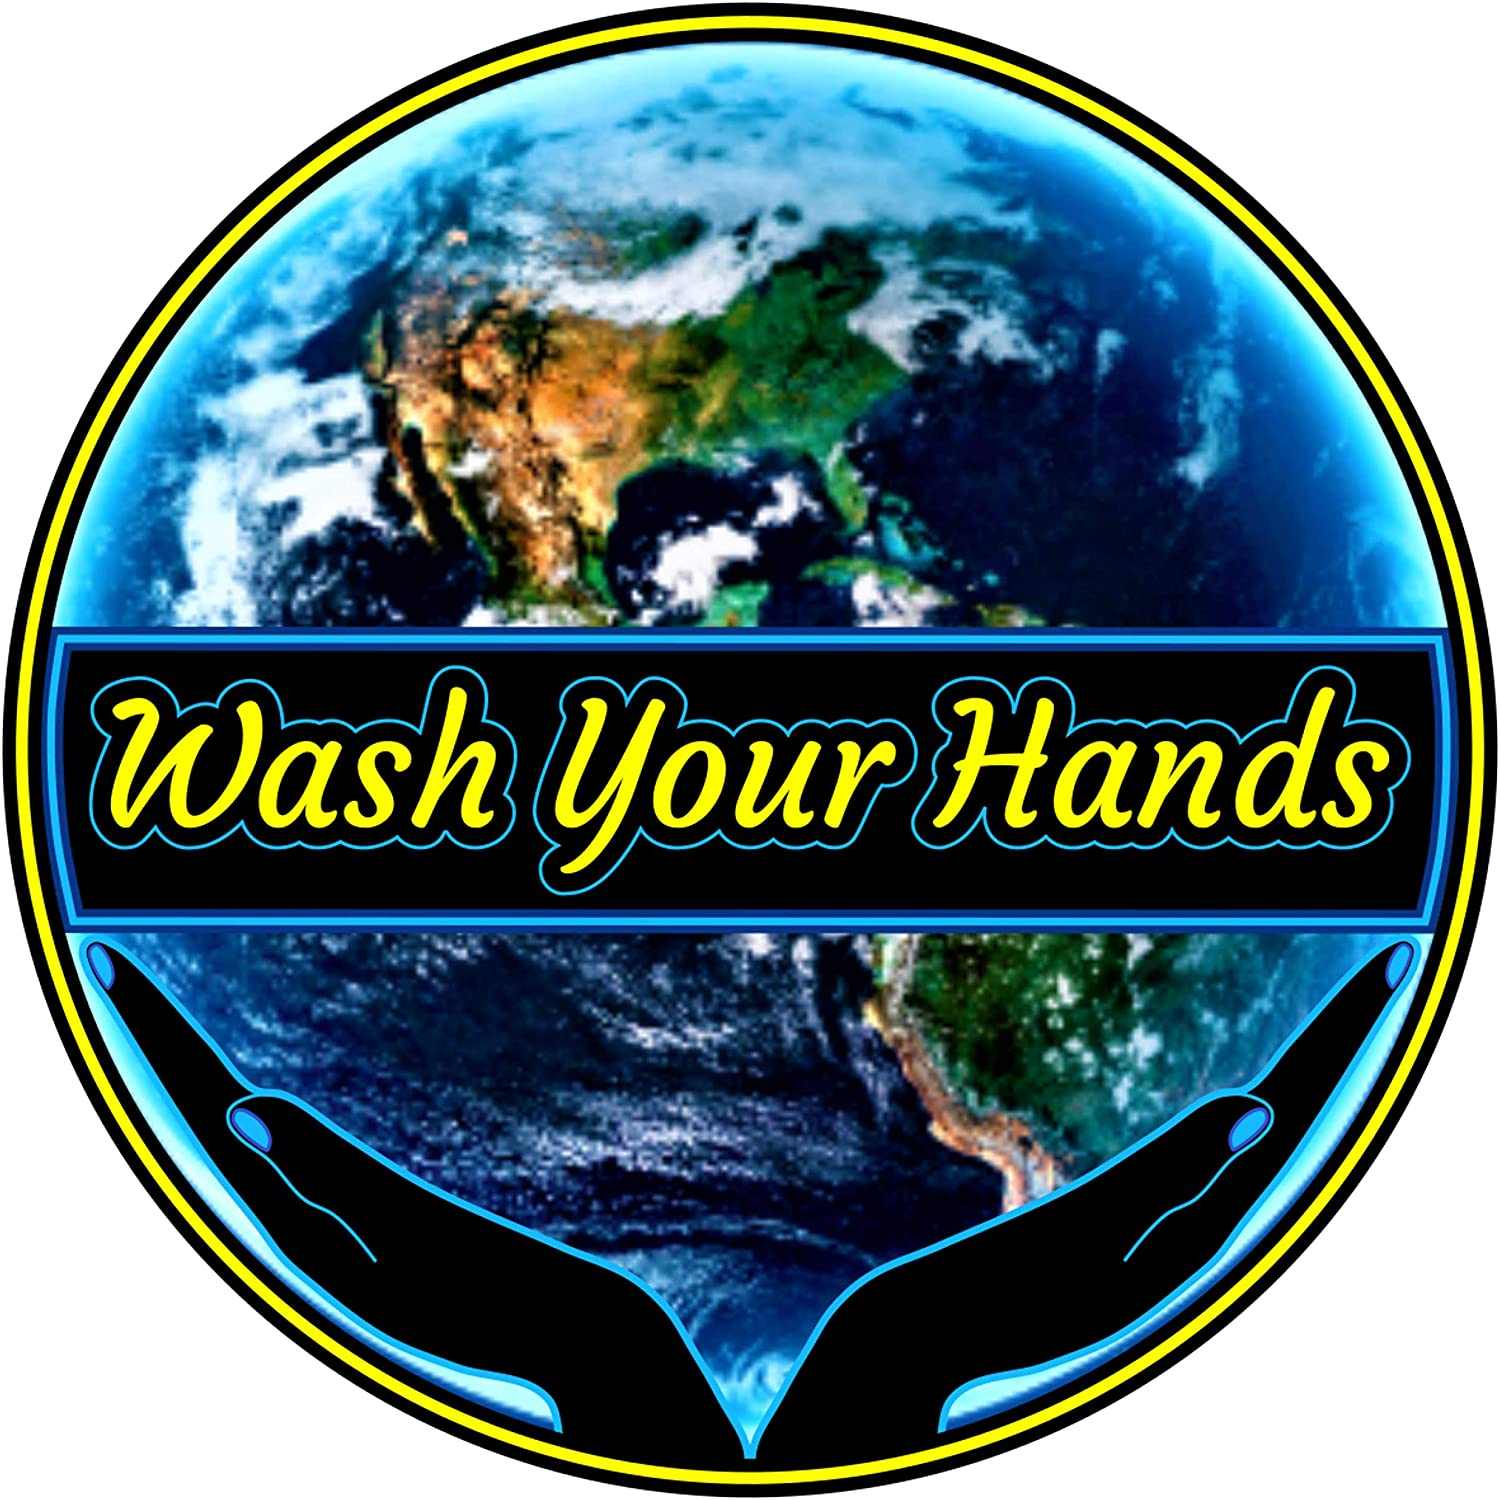 Wash Your Hands Sticker - World Safety in Your Hands Decal 3 X 3 inch | for Sink Mirror Towel & Soap Dispenser Support Hand Washing Vote Joe Biden Kamala Harris Vice-President + Better Than Magnet